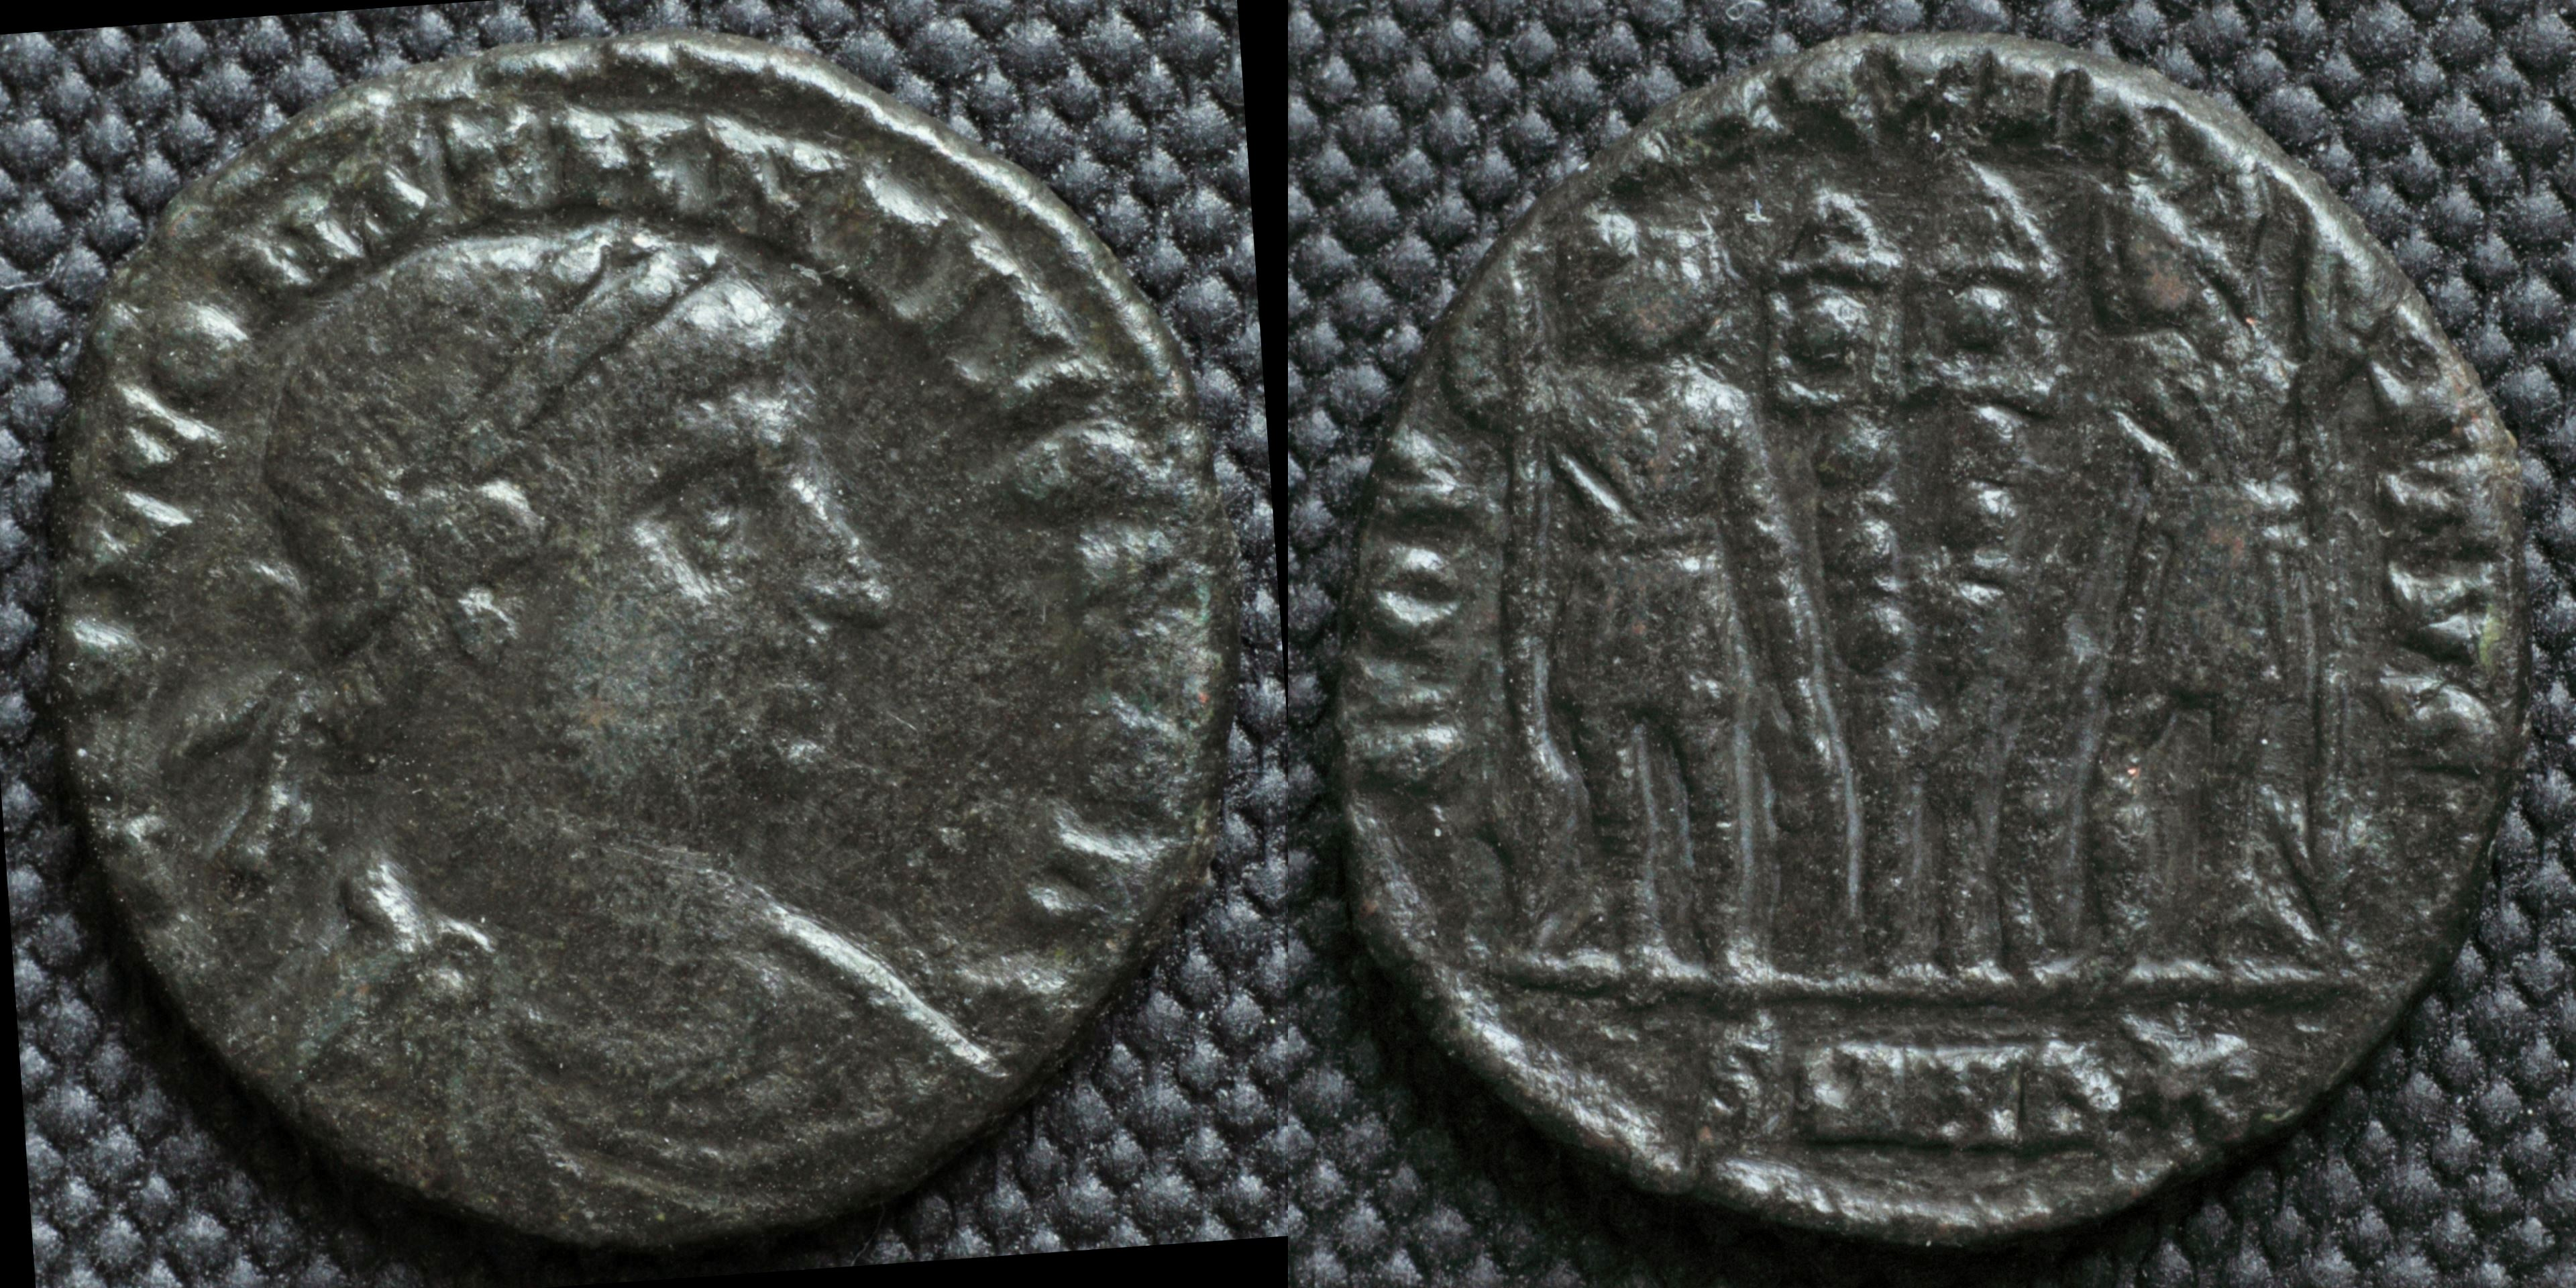 /Files/Images/Coinsite/CoinDB/156_Constantius_II_SMHDx.jpg